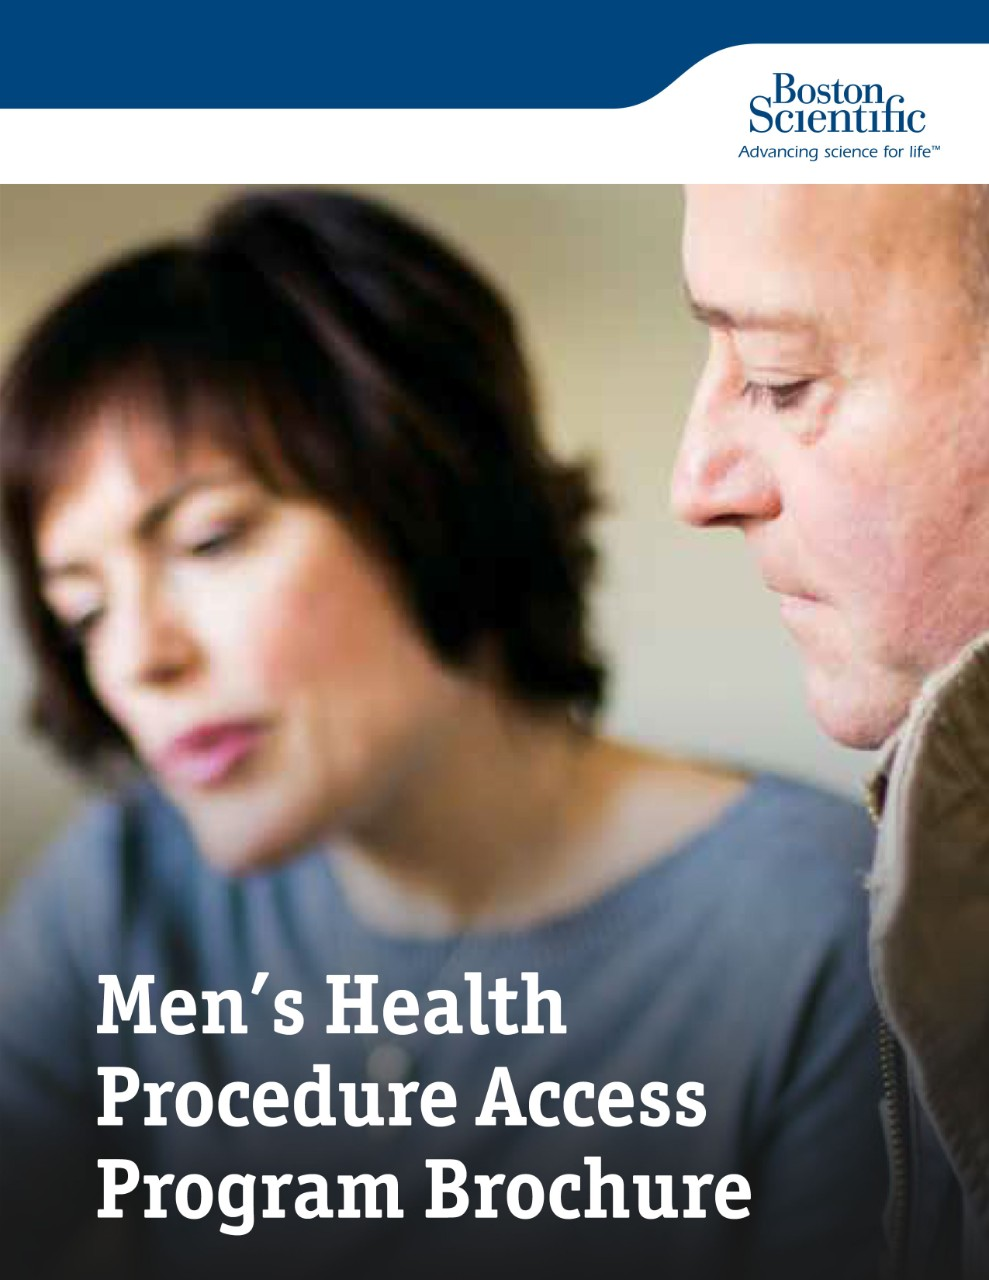 Boston Scientific Prosthetic Urology Procedure Access Program Brochure